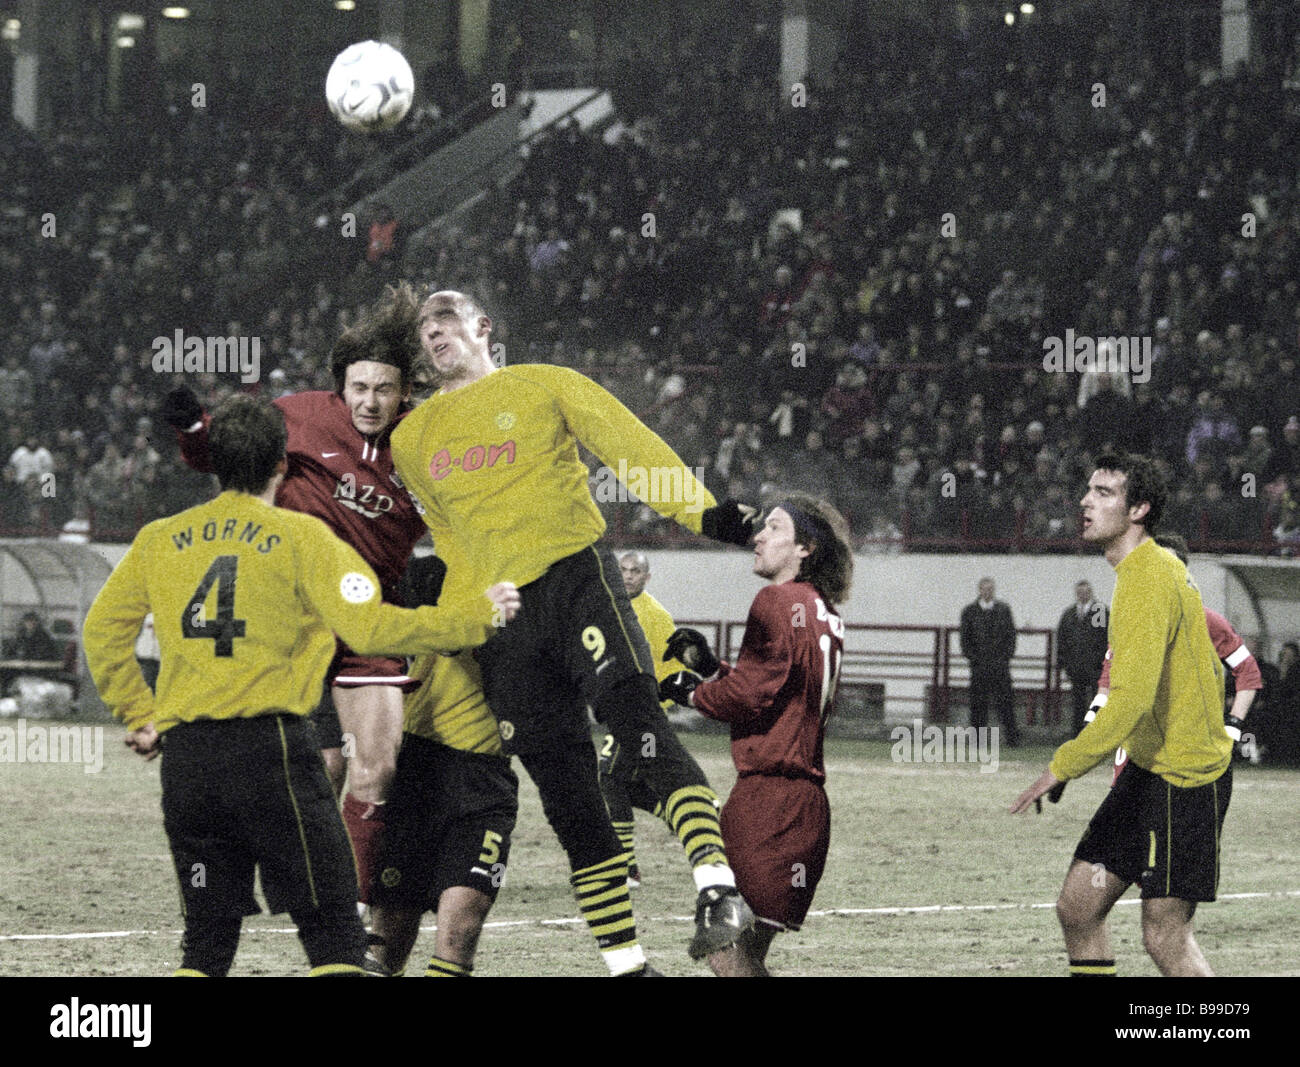 The Locomotive Moscow contests Germany s Borussia on the soccer field - Stock Image